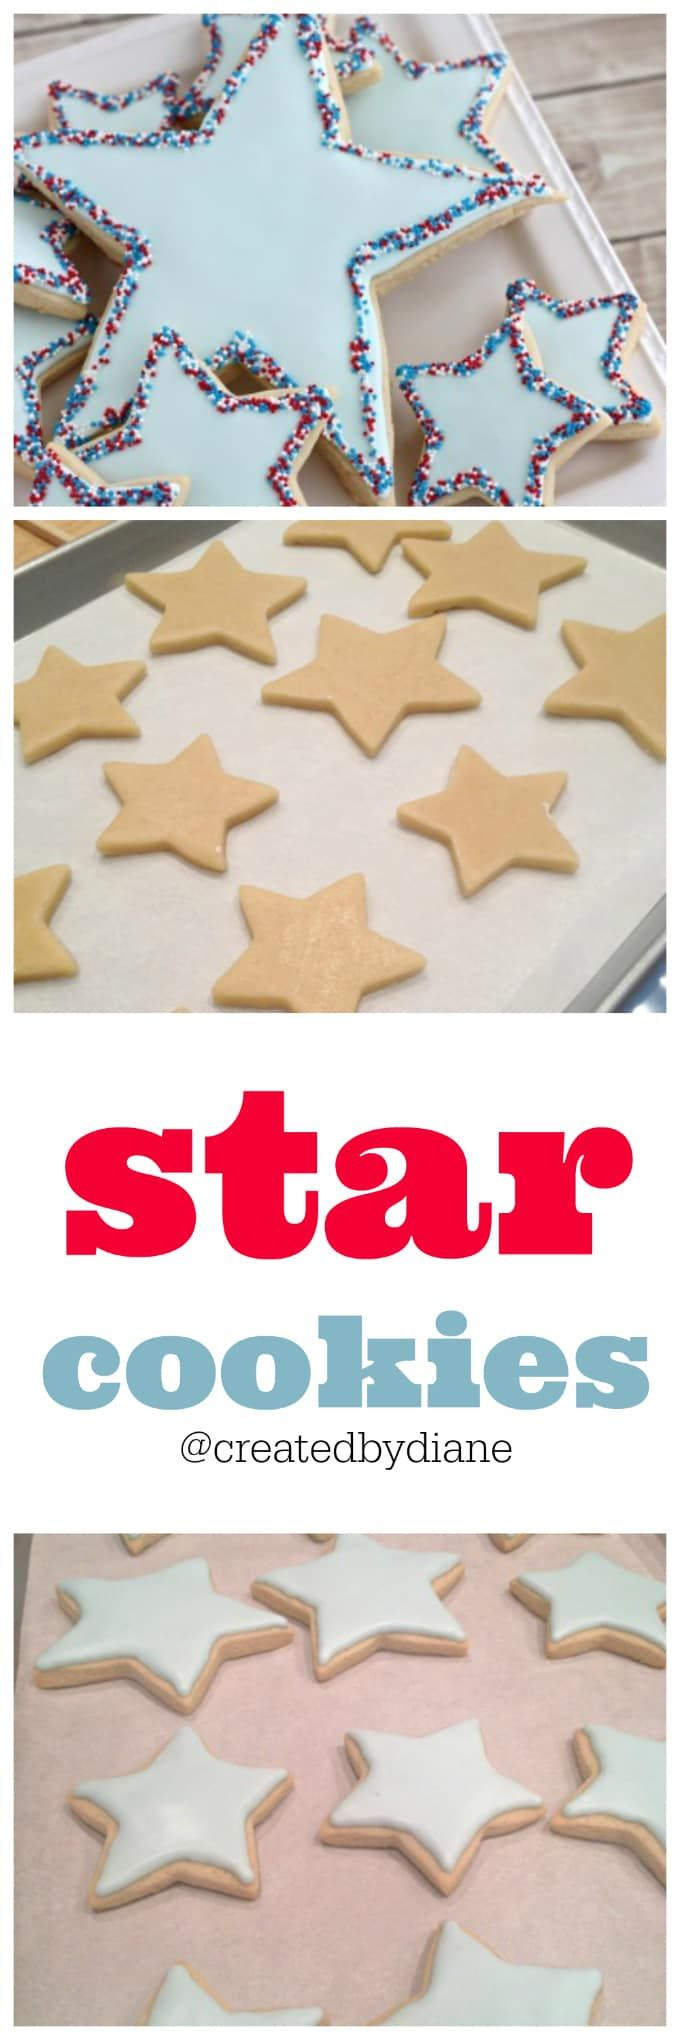 cut out sugar cookies with royal icing and sprinkl…